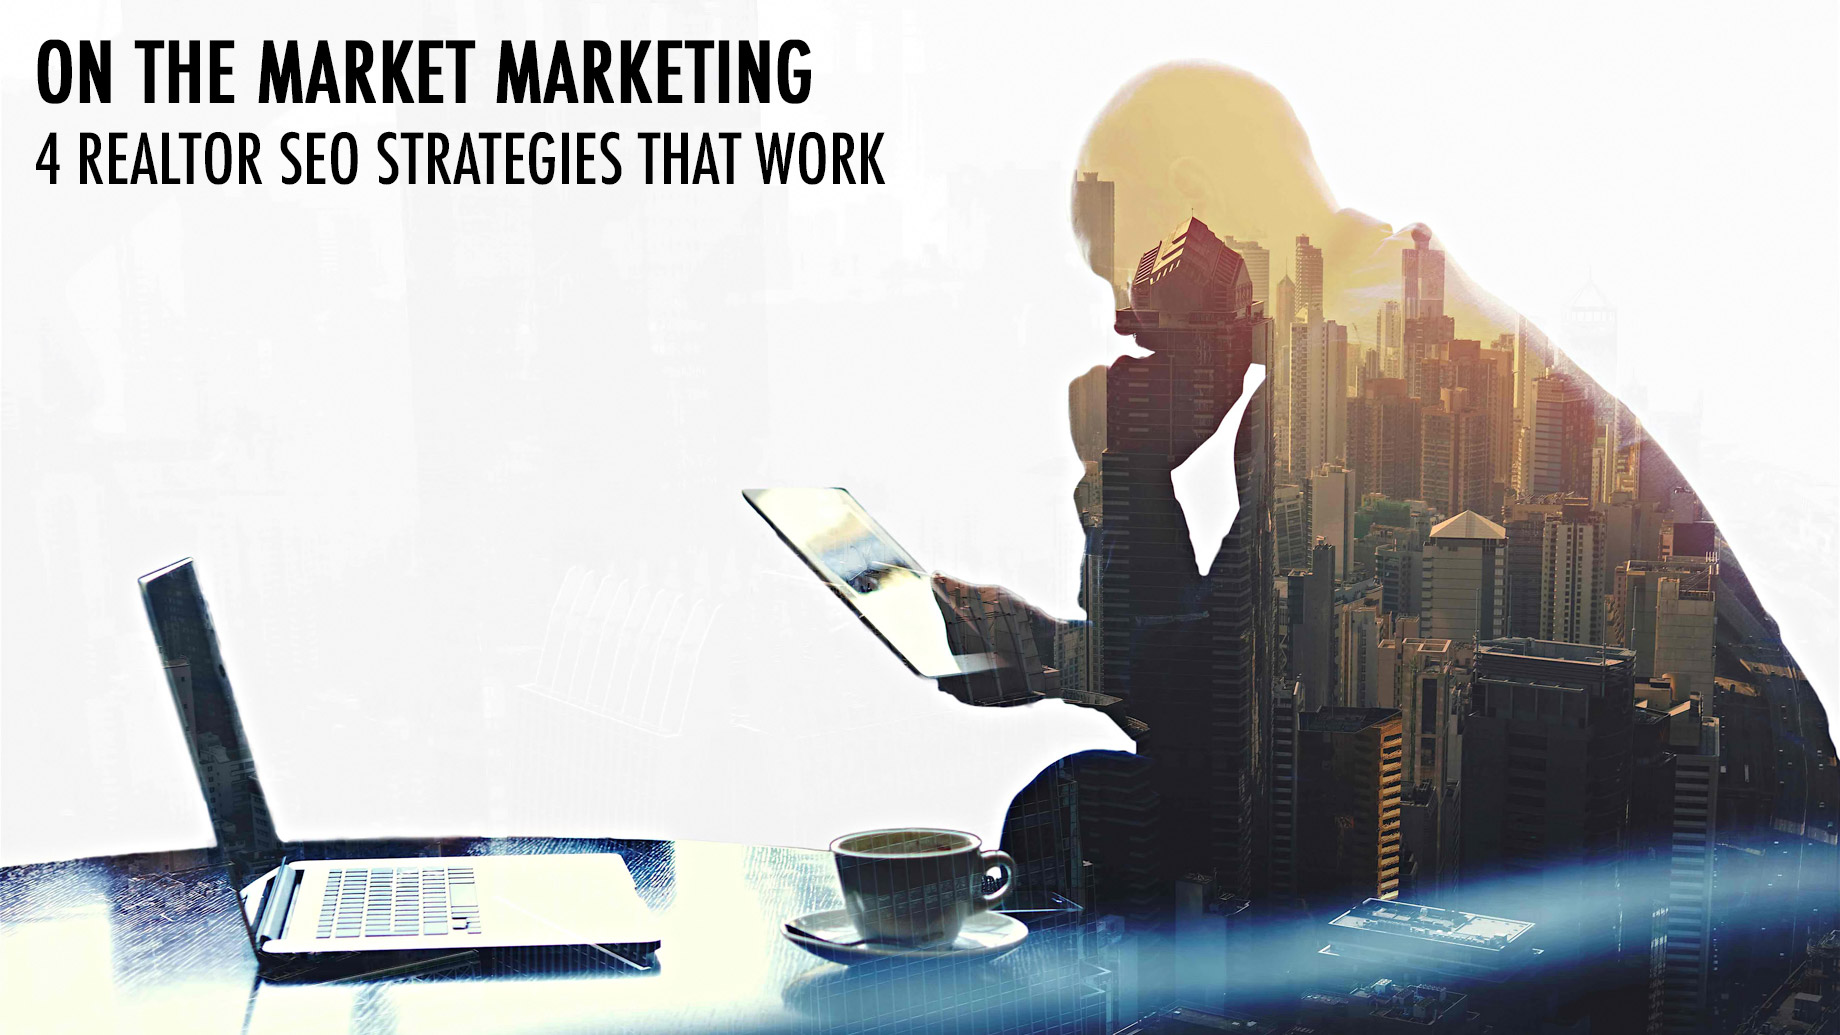 On the Market Marketing - 4 Realtor SEO Strategies That Work